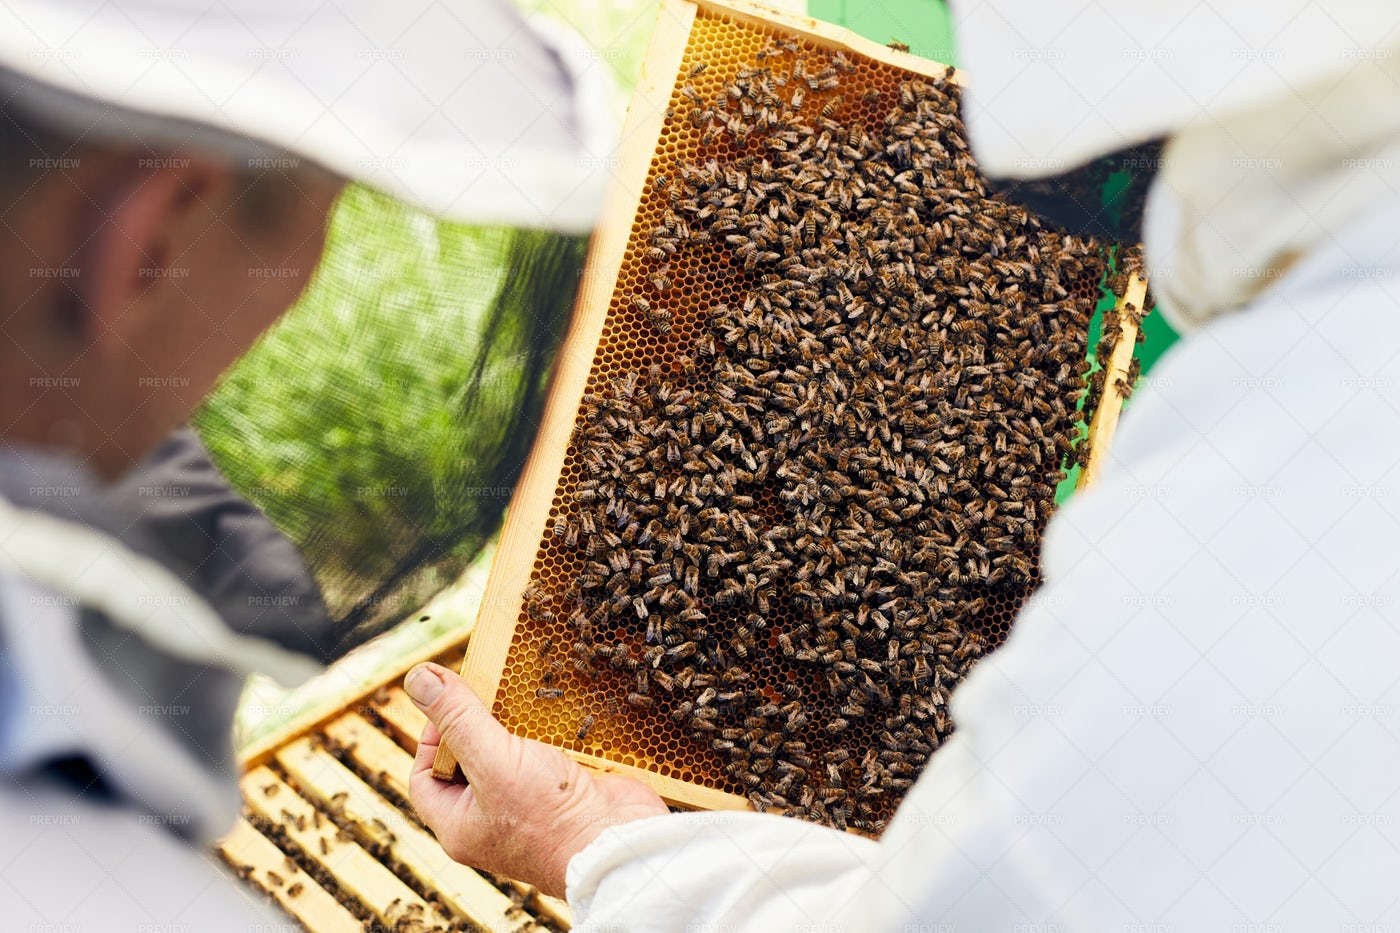 Beekeepers Inspecting Hive: Stock Photos